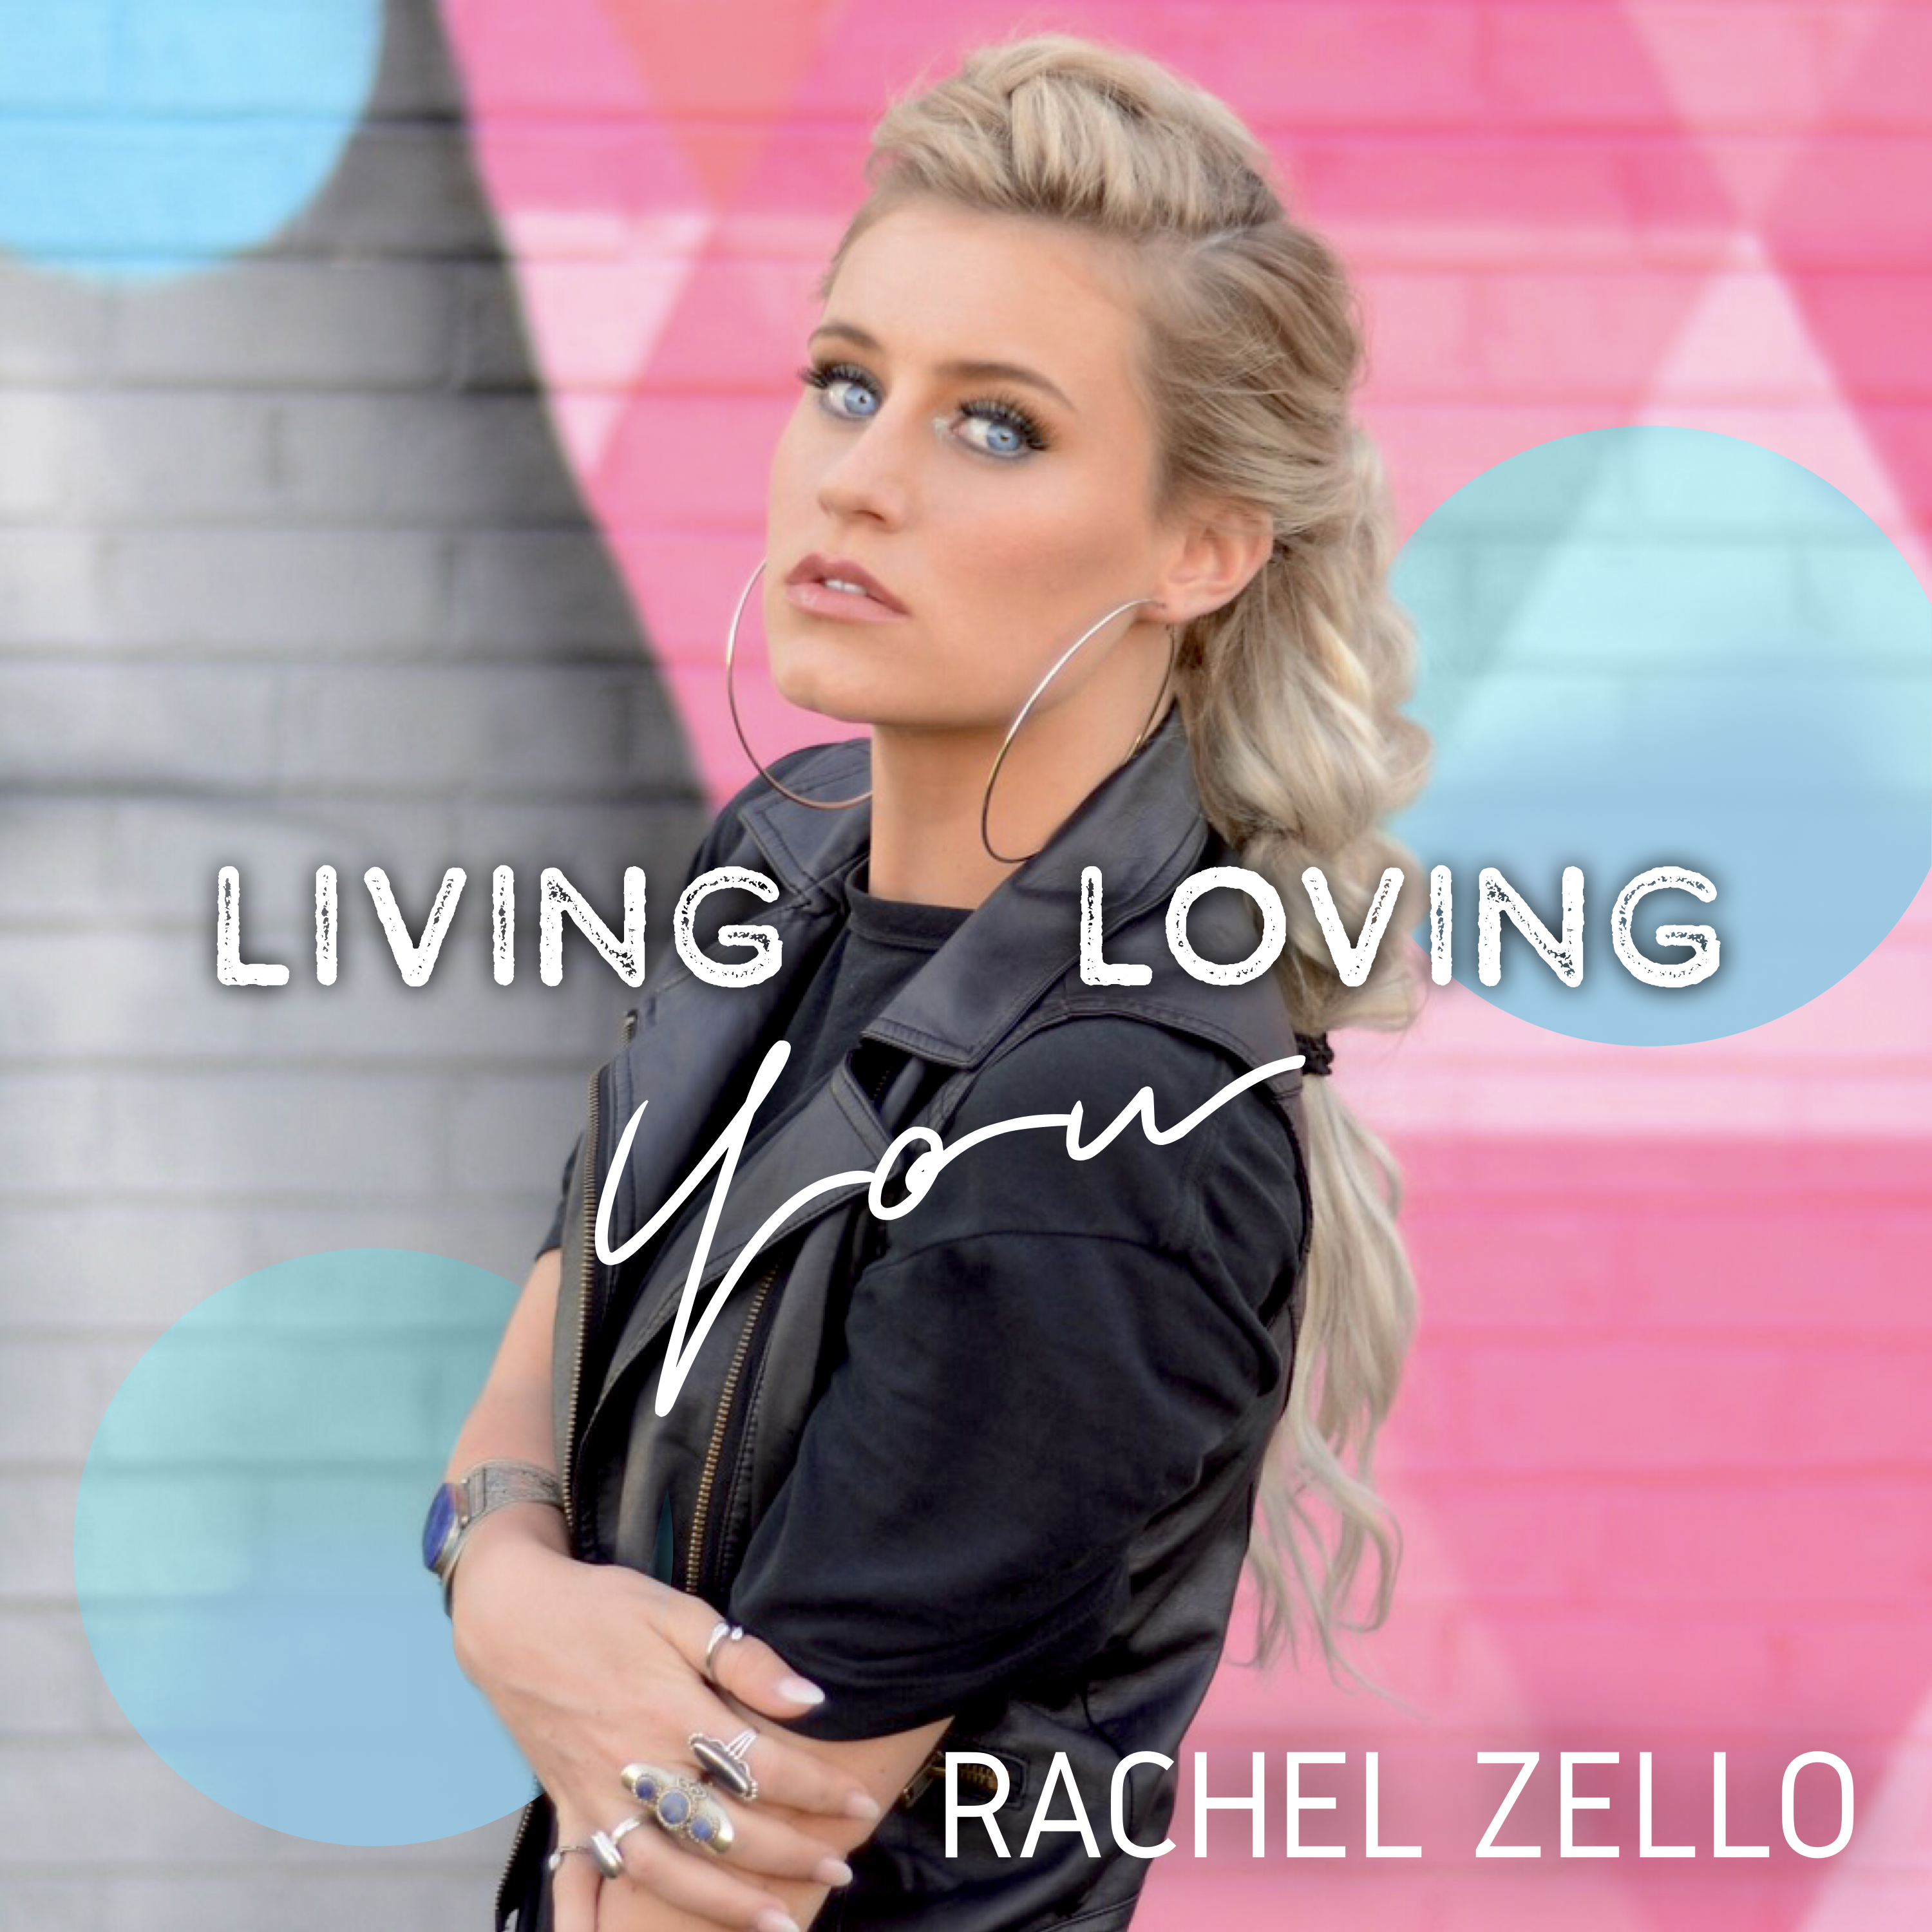 RACHEL ZELLO RELEASES NEW SINGLE